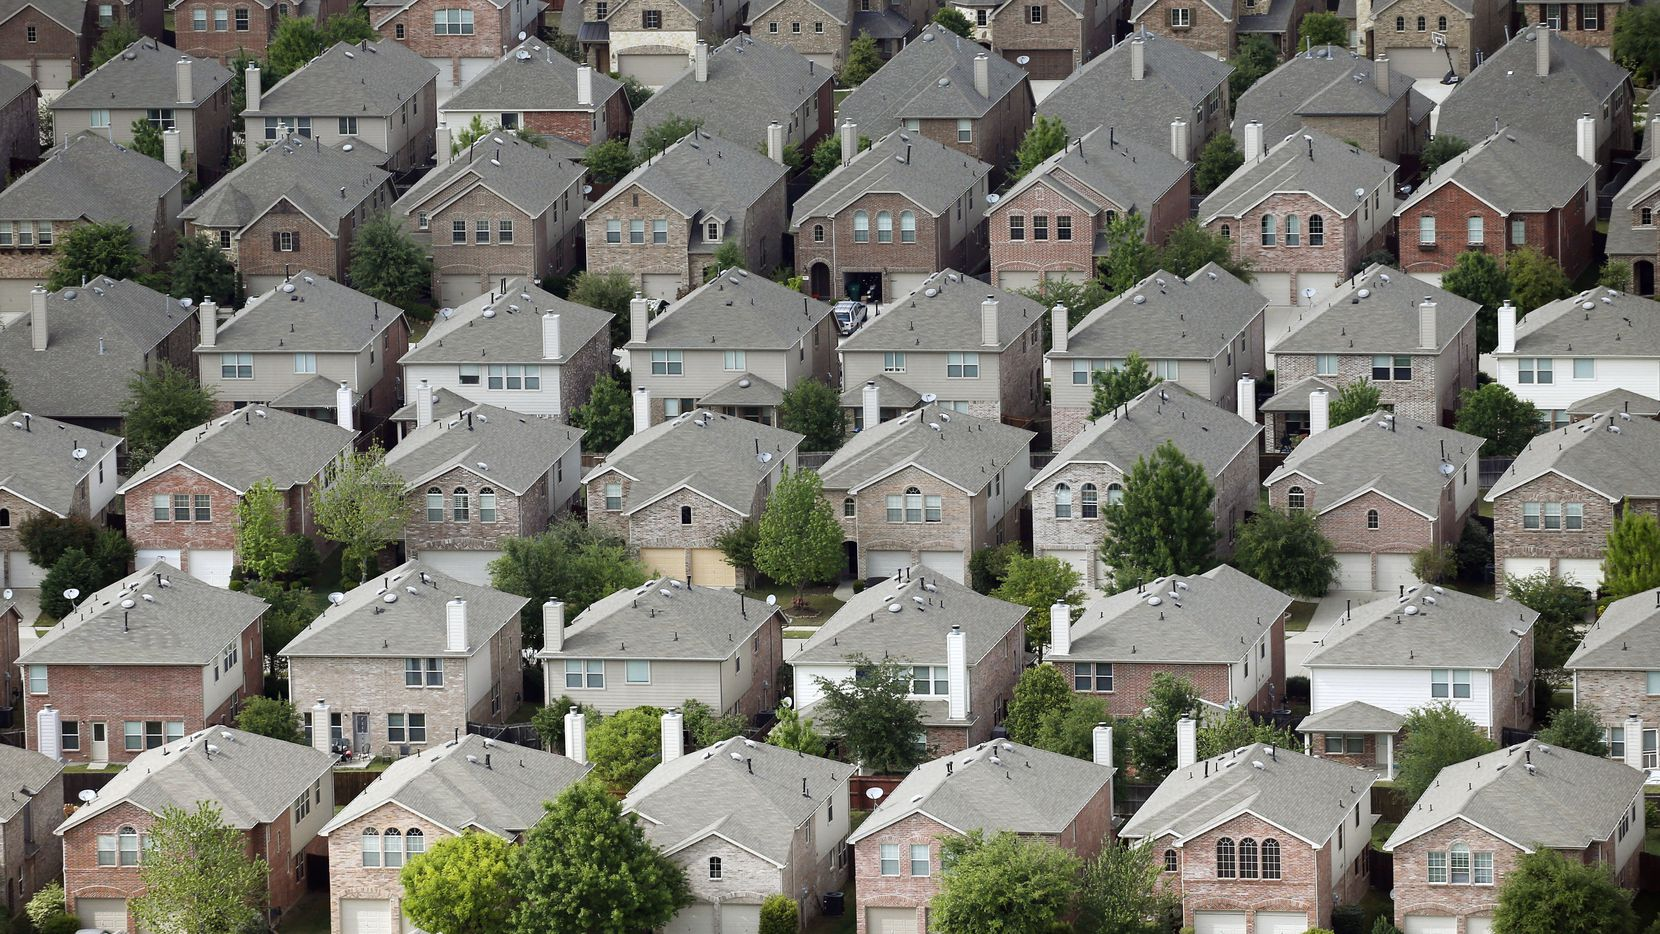 D-FW's average mortgage debt is still below the national average, according to credit firm Experian.